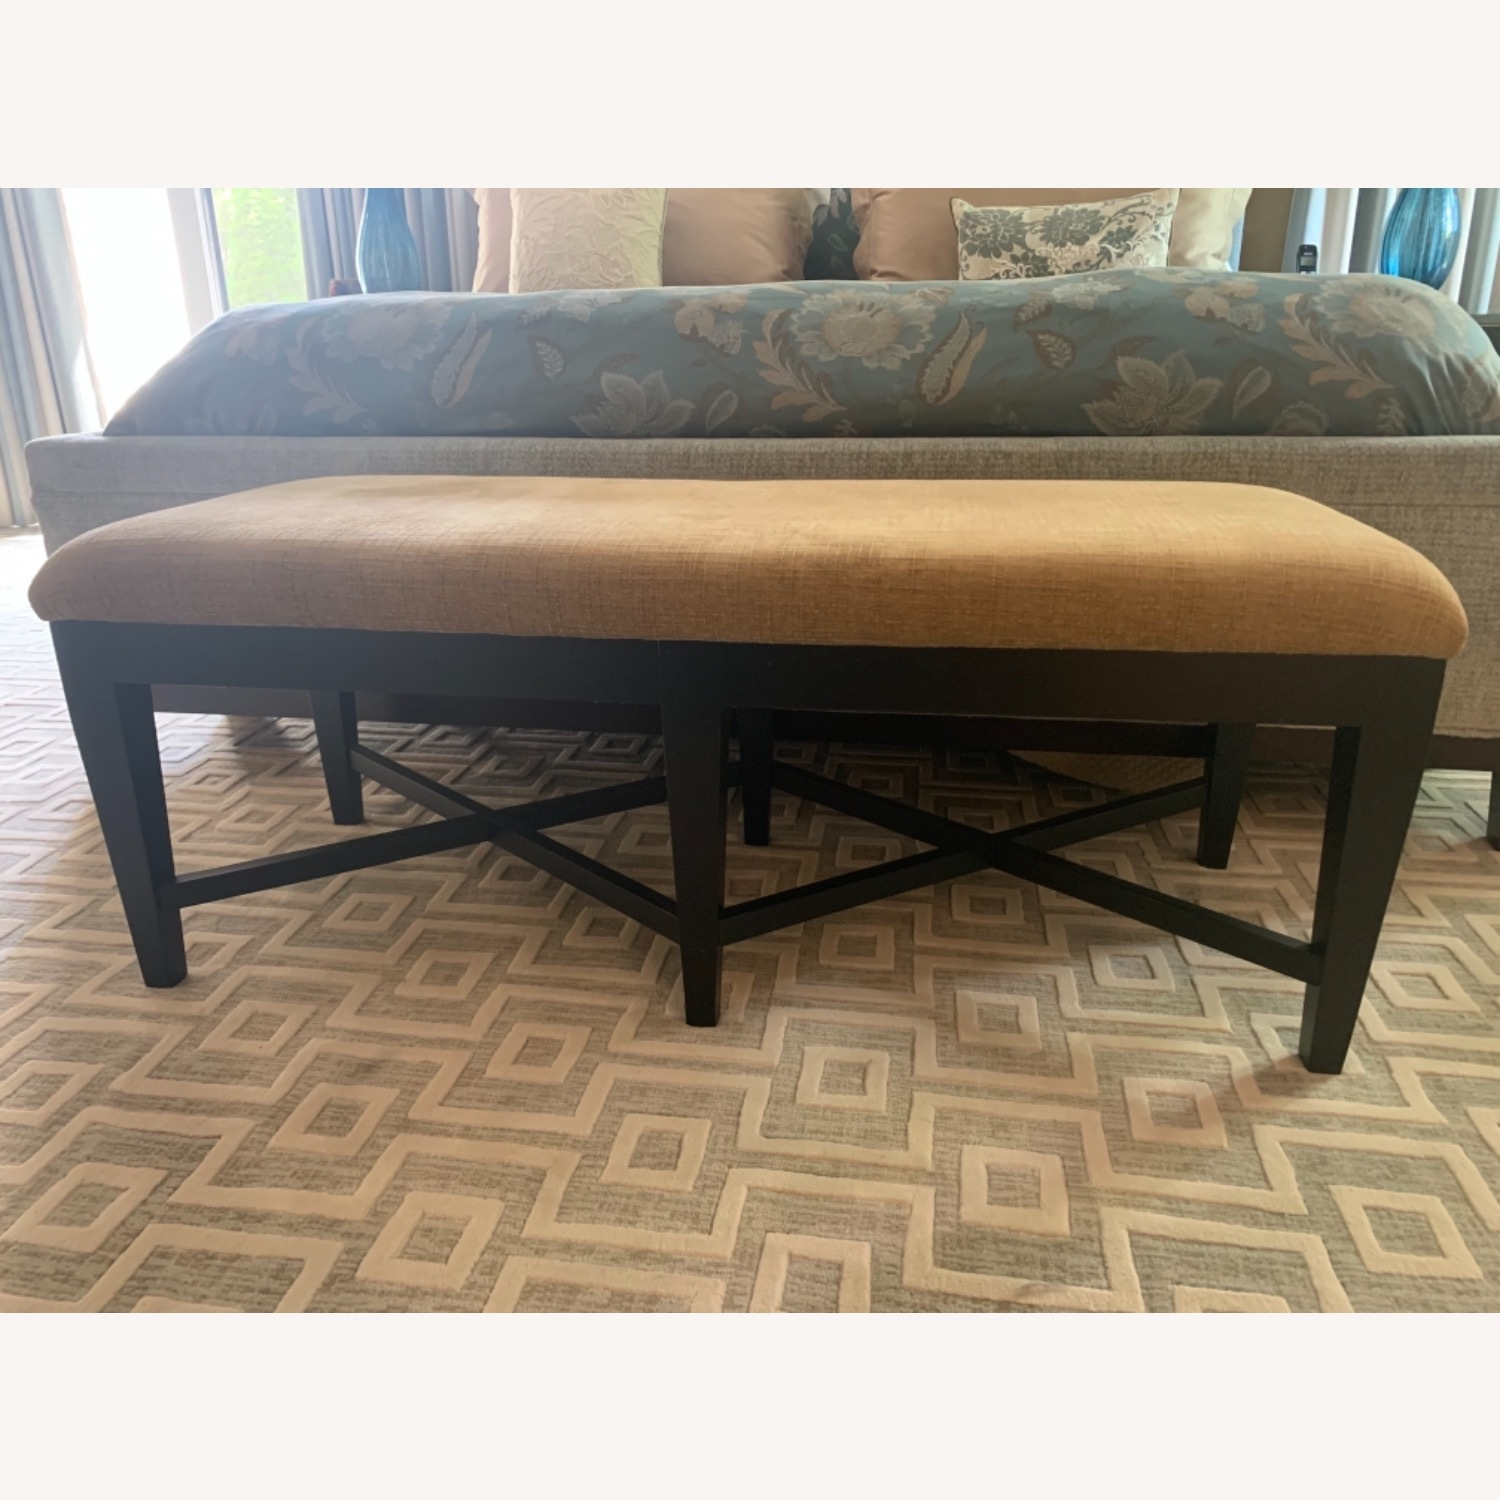 Bernhardt Wood and Chenille Bench - image-3